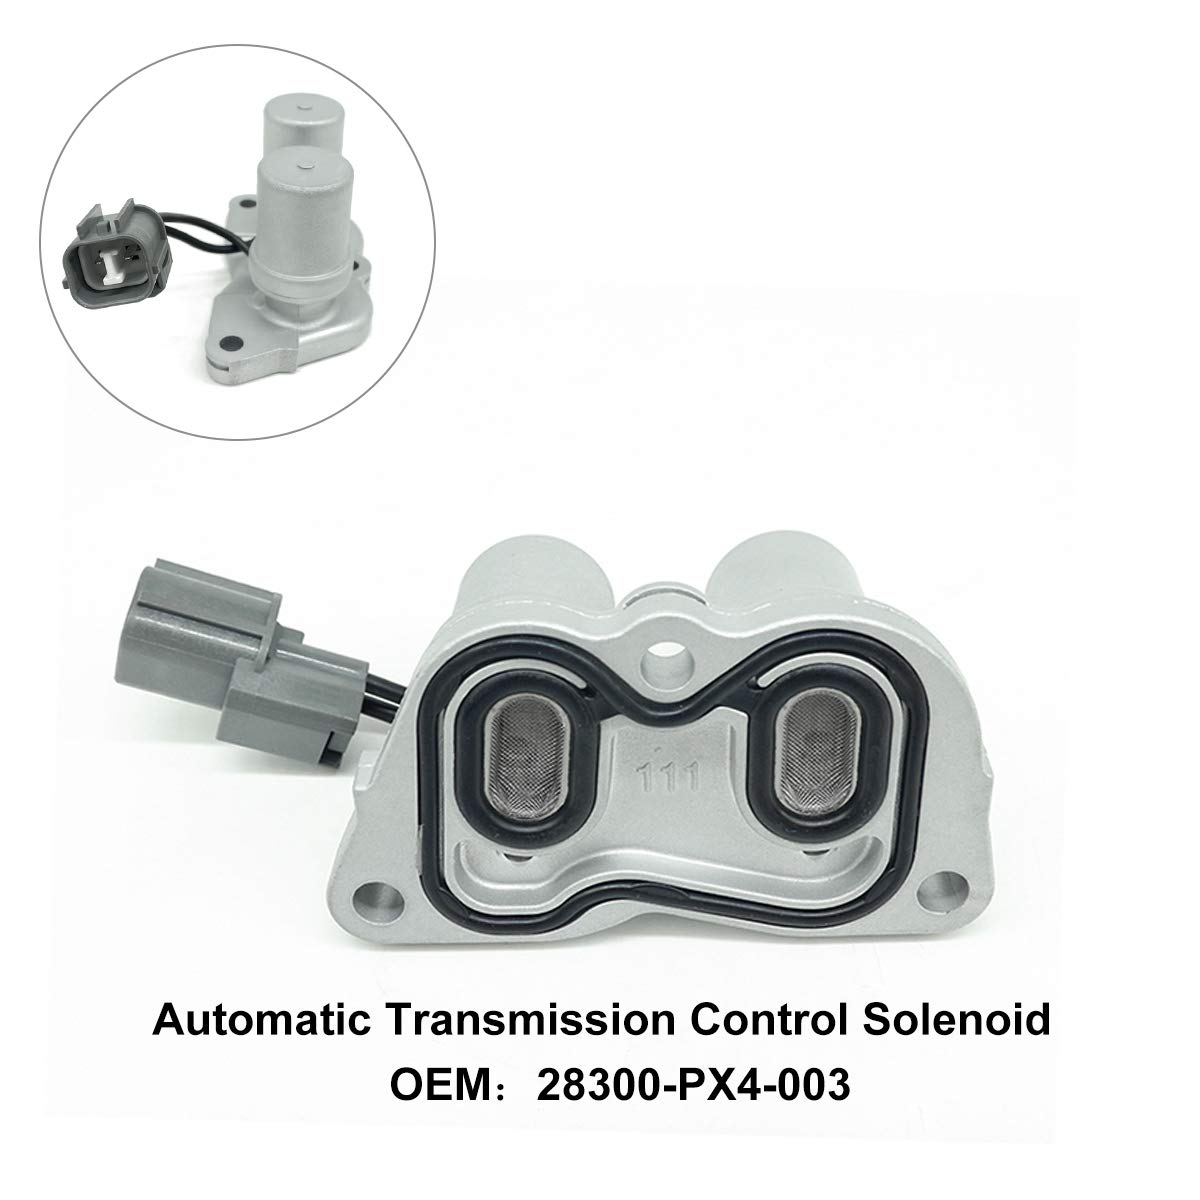 Transmission Control Shift Lock up Solenoid Replacement For 1998-2002 Honda Accord 4 Cylinder 1997-2001 28300-PX4-003 Honda Prelude 1997-1999 Acura CL 1995-1998 Honda Odyssey Automatic Control Solenoi